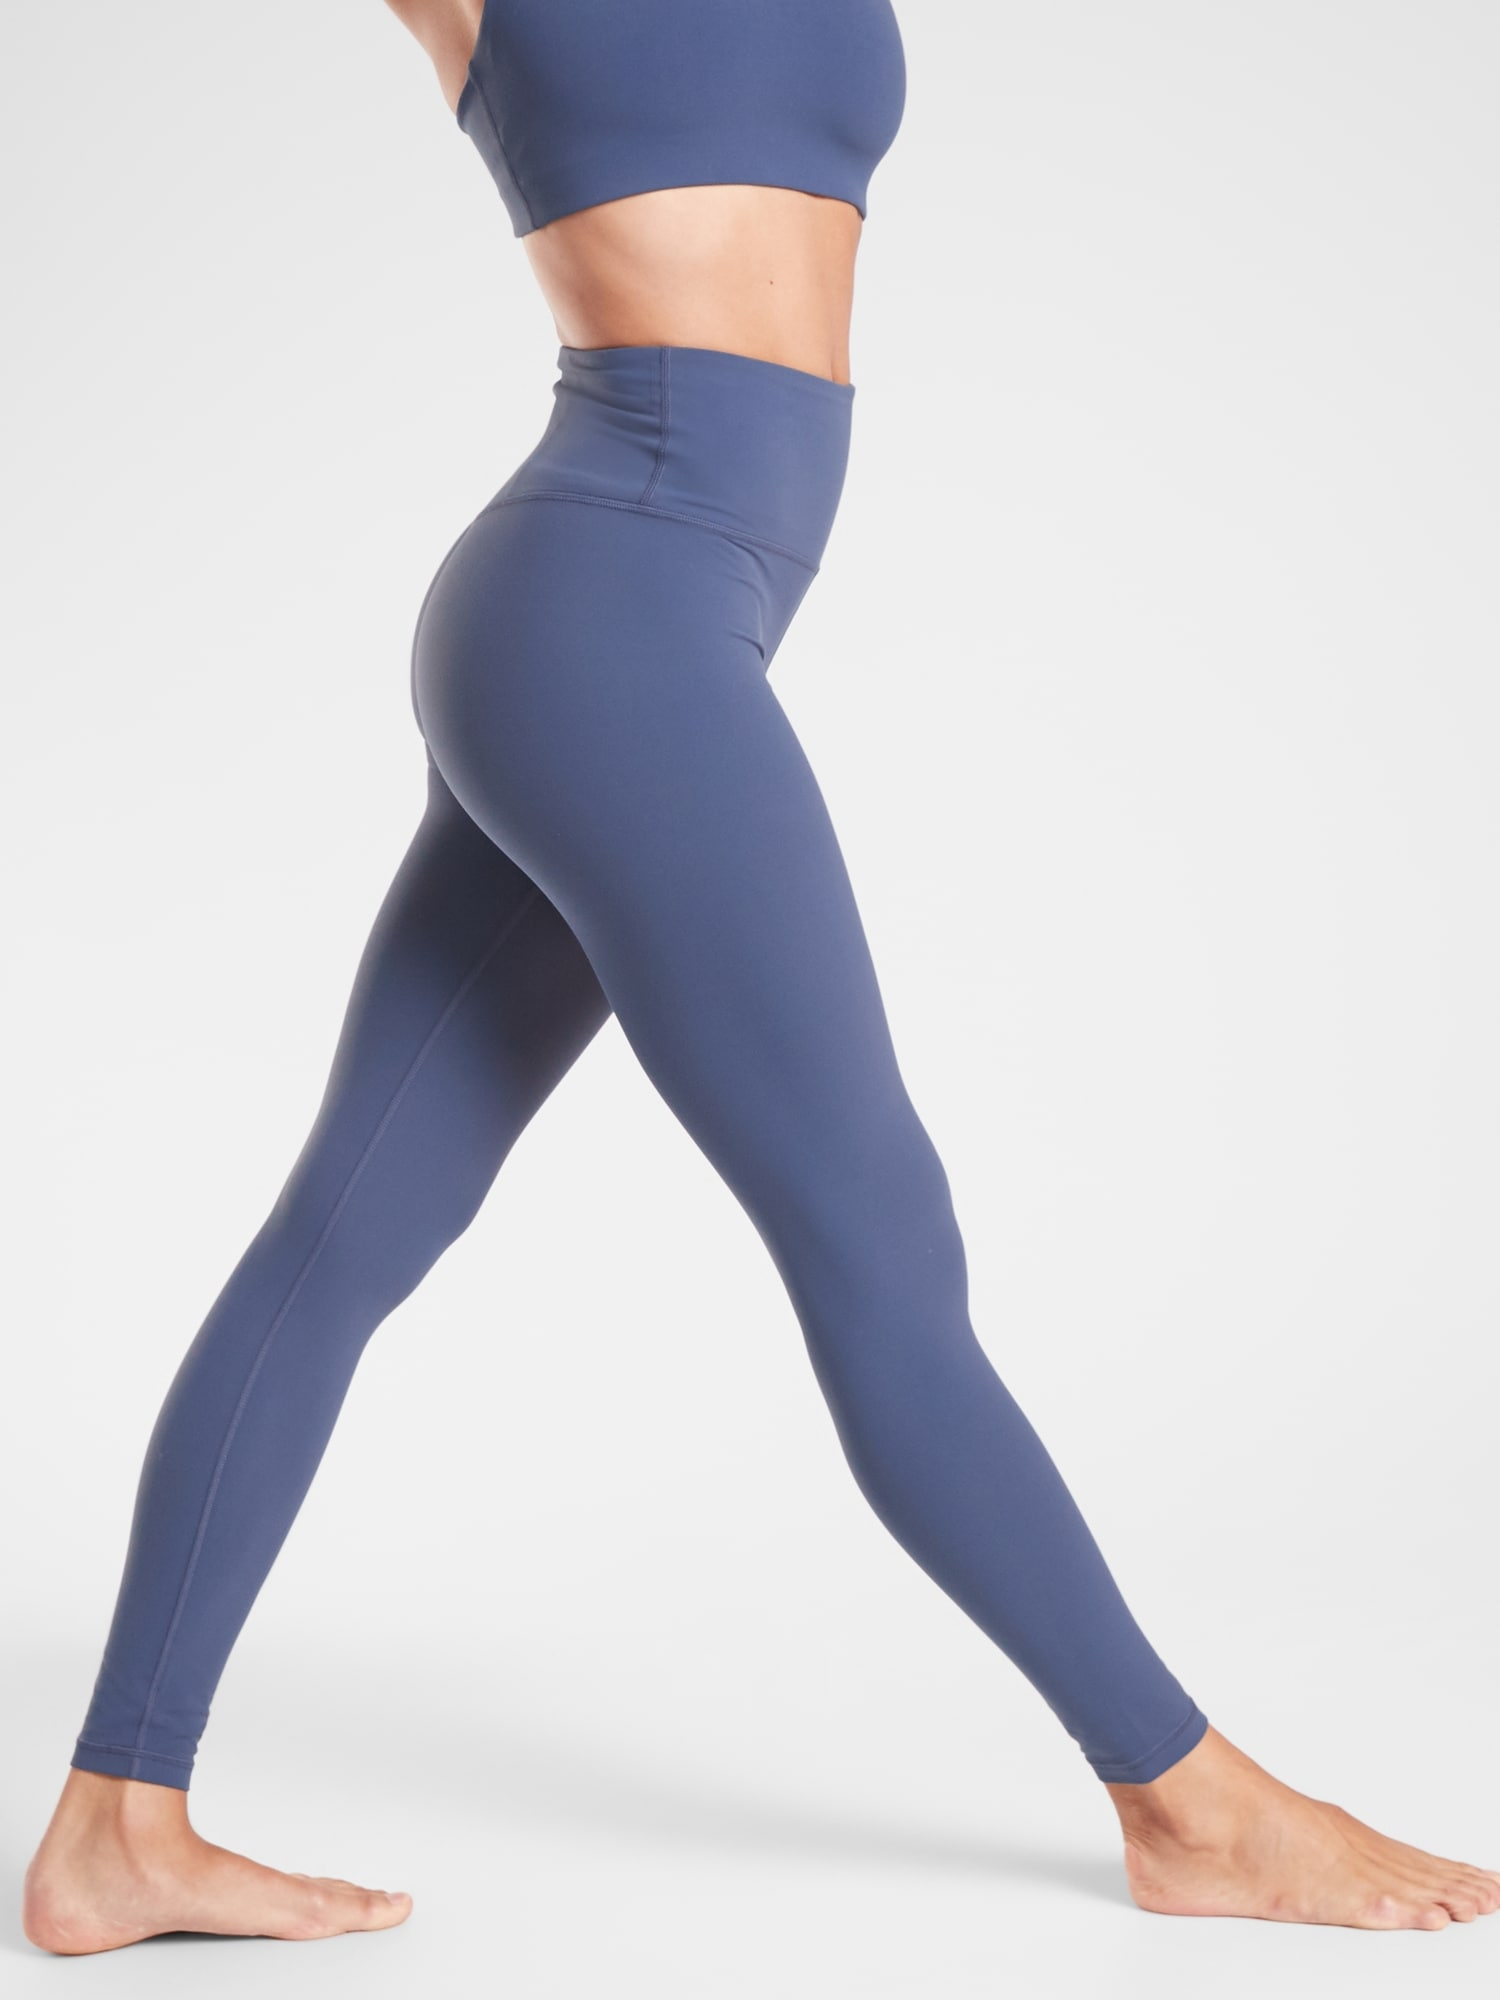 Not applicable Extra Soft Yoga Pants Non See-Through High Waist Urban Camouflage Masking Mesh Workout Leggings